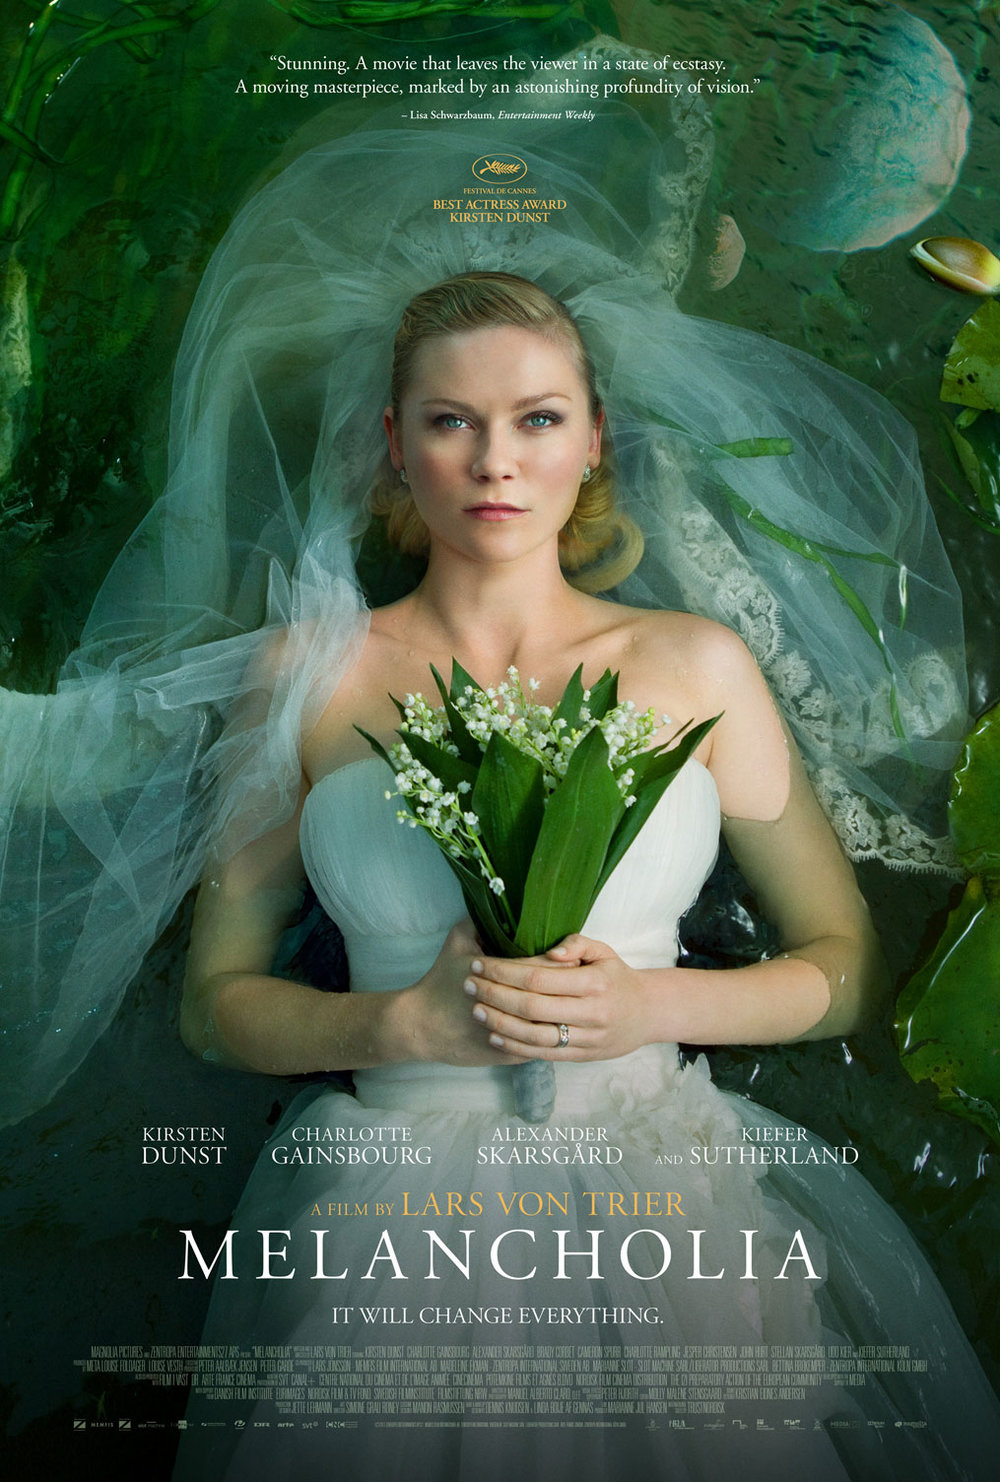 melancholia-movie-poster.jpg